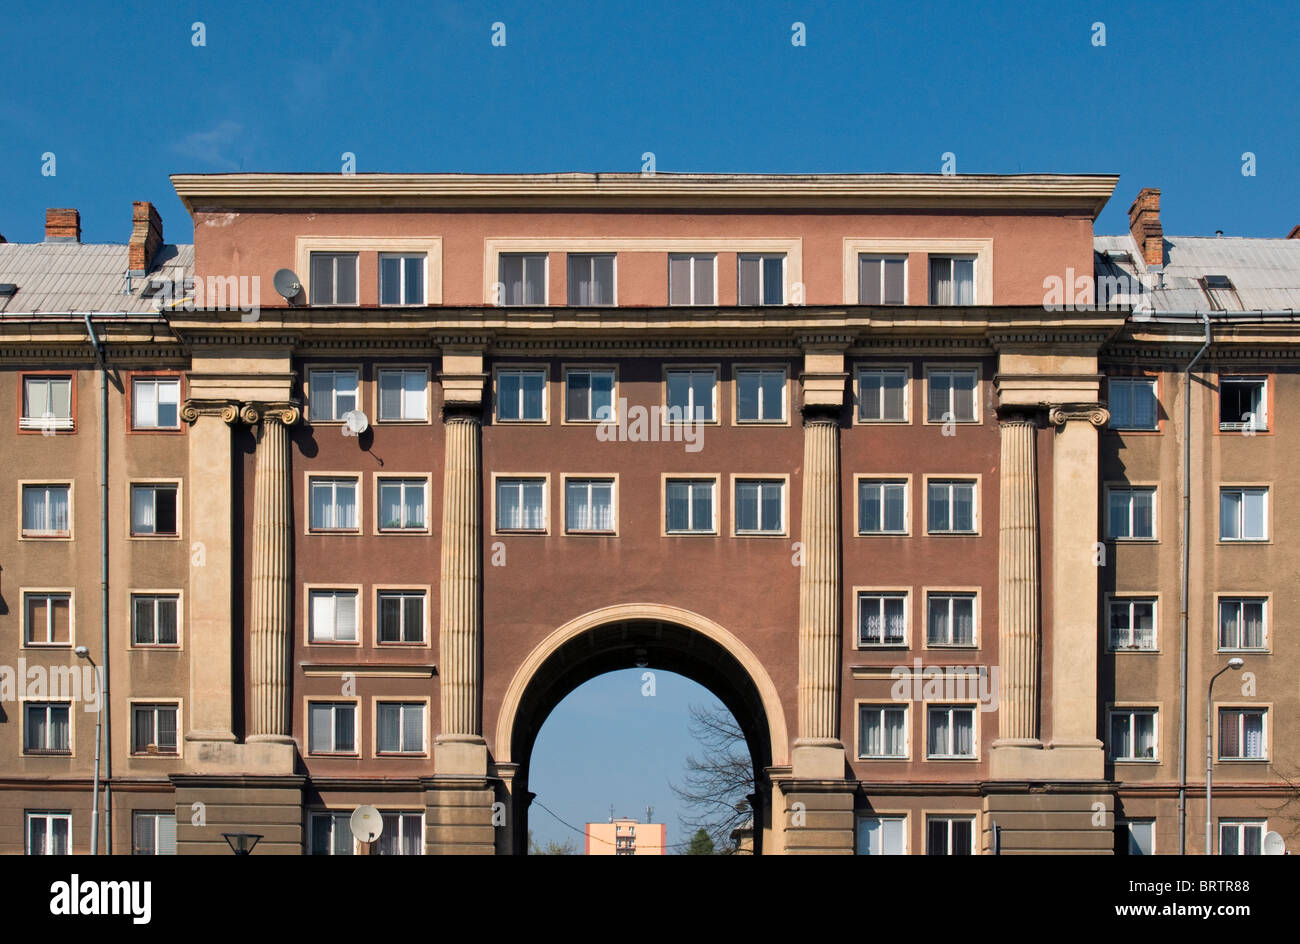 Apartment building with arch in 1950s socialist realism for Architecture 1950